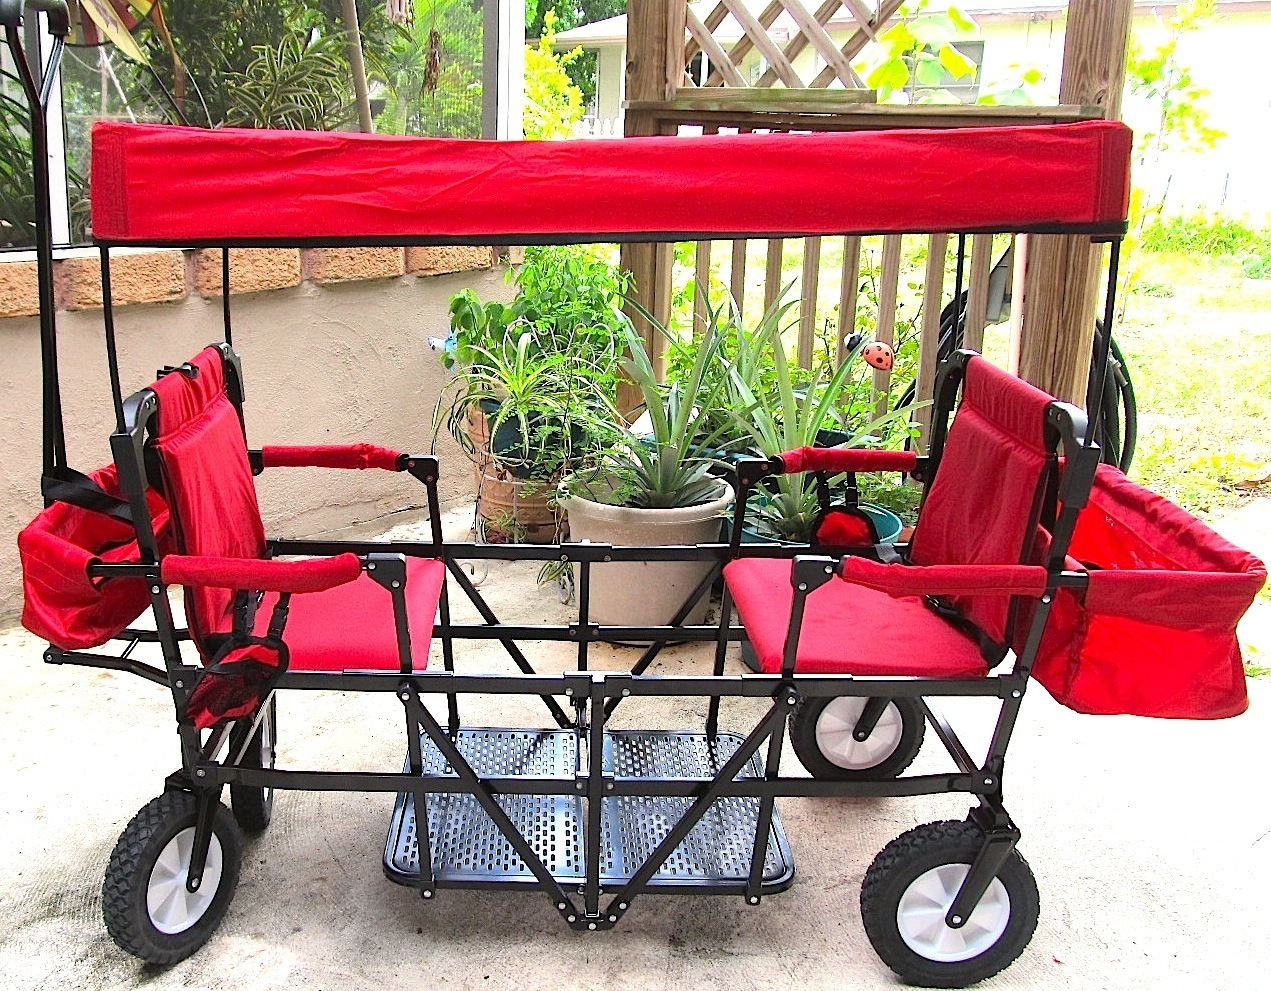 truck canopies | eBay - Electronics, Cars, Fashion, Collectibles